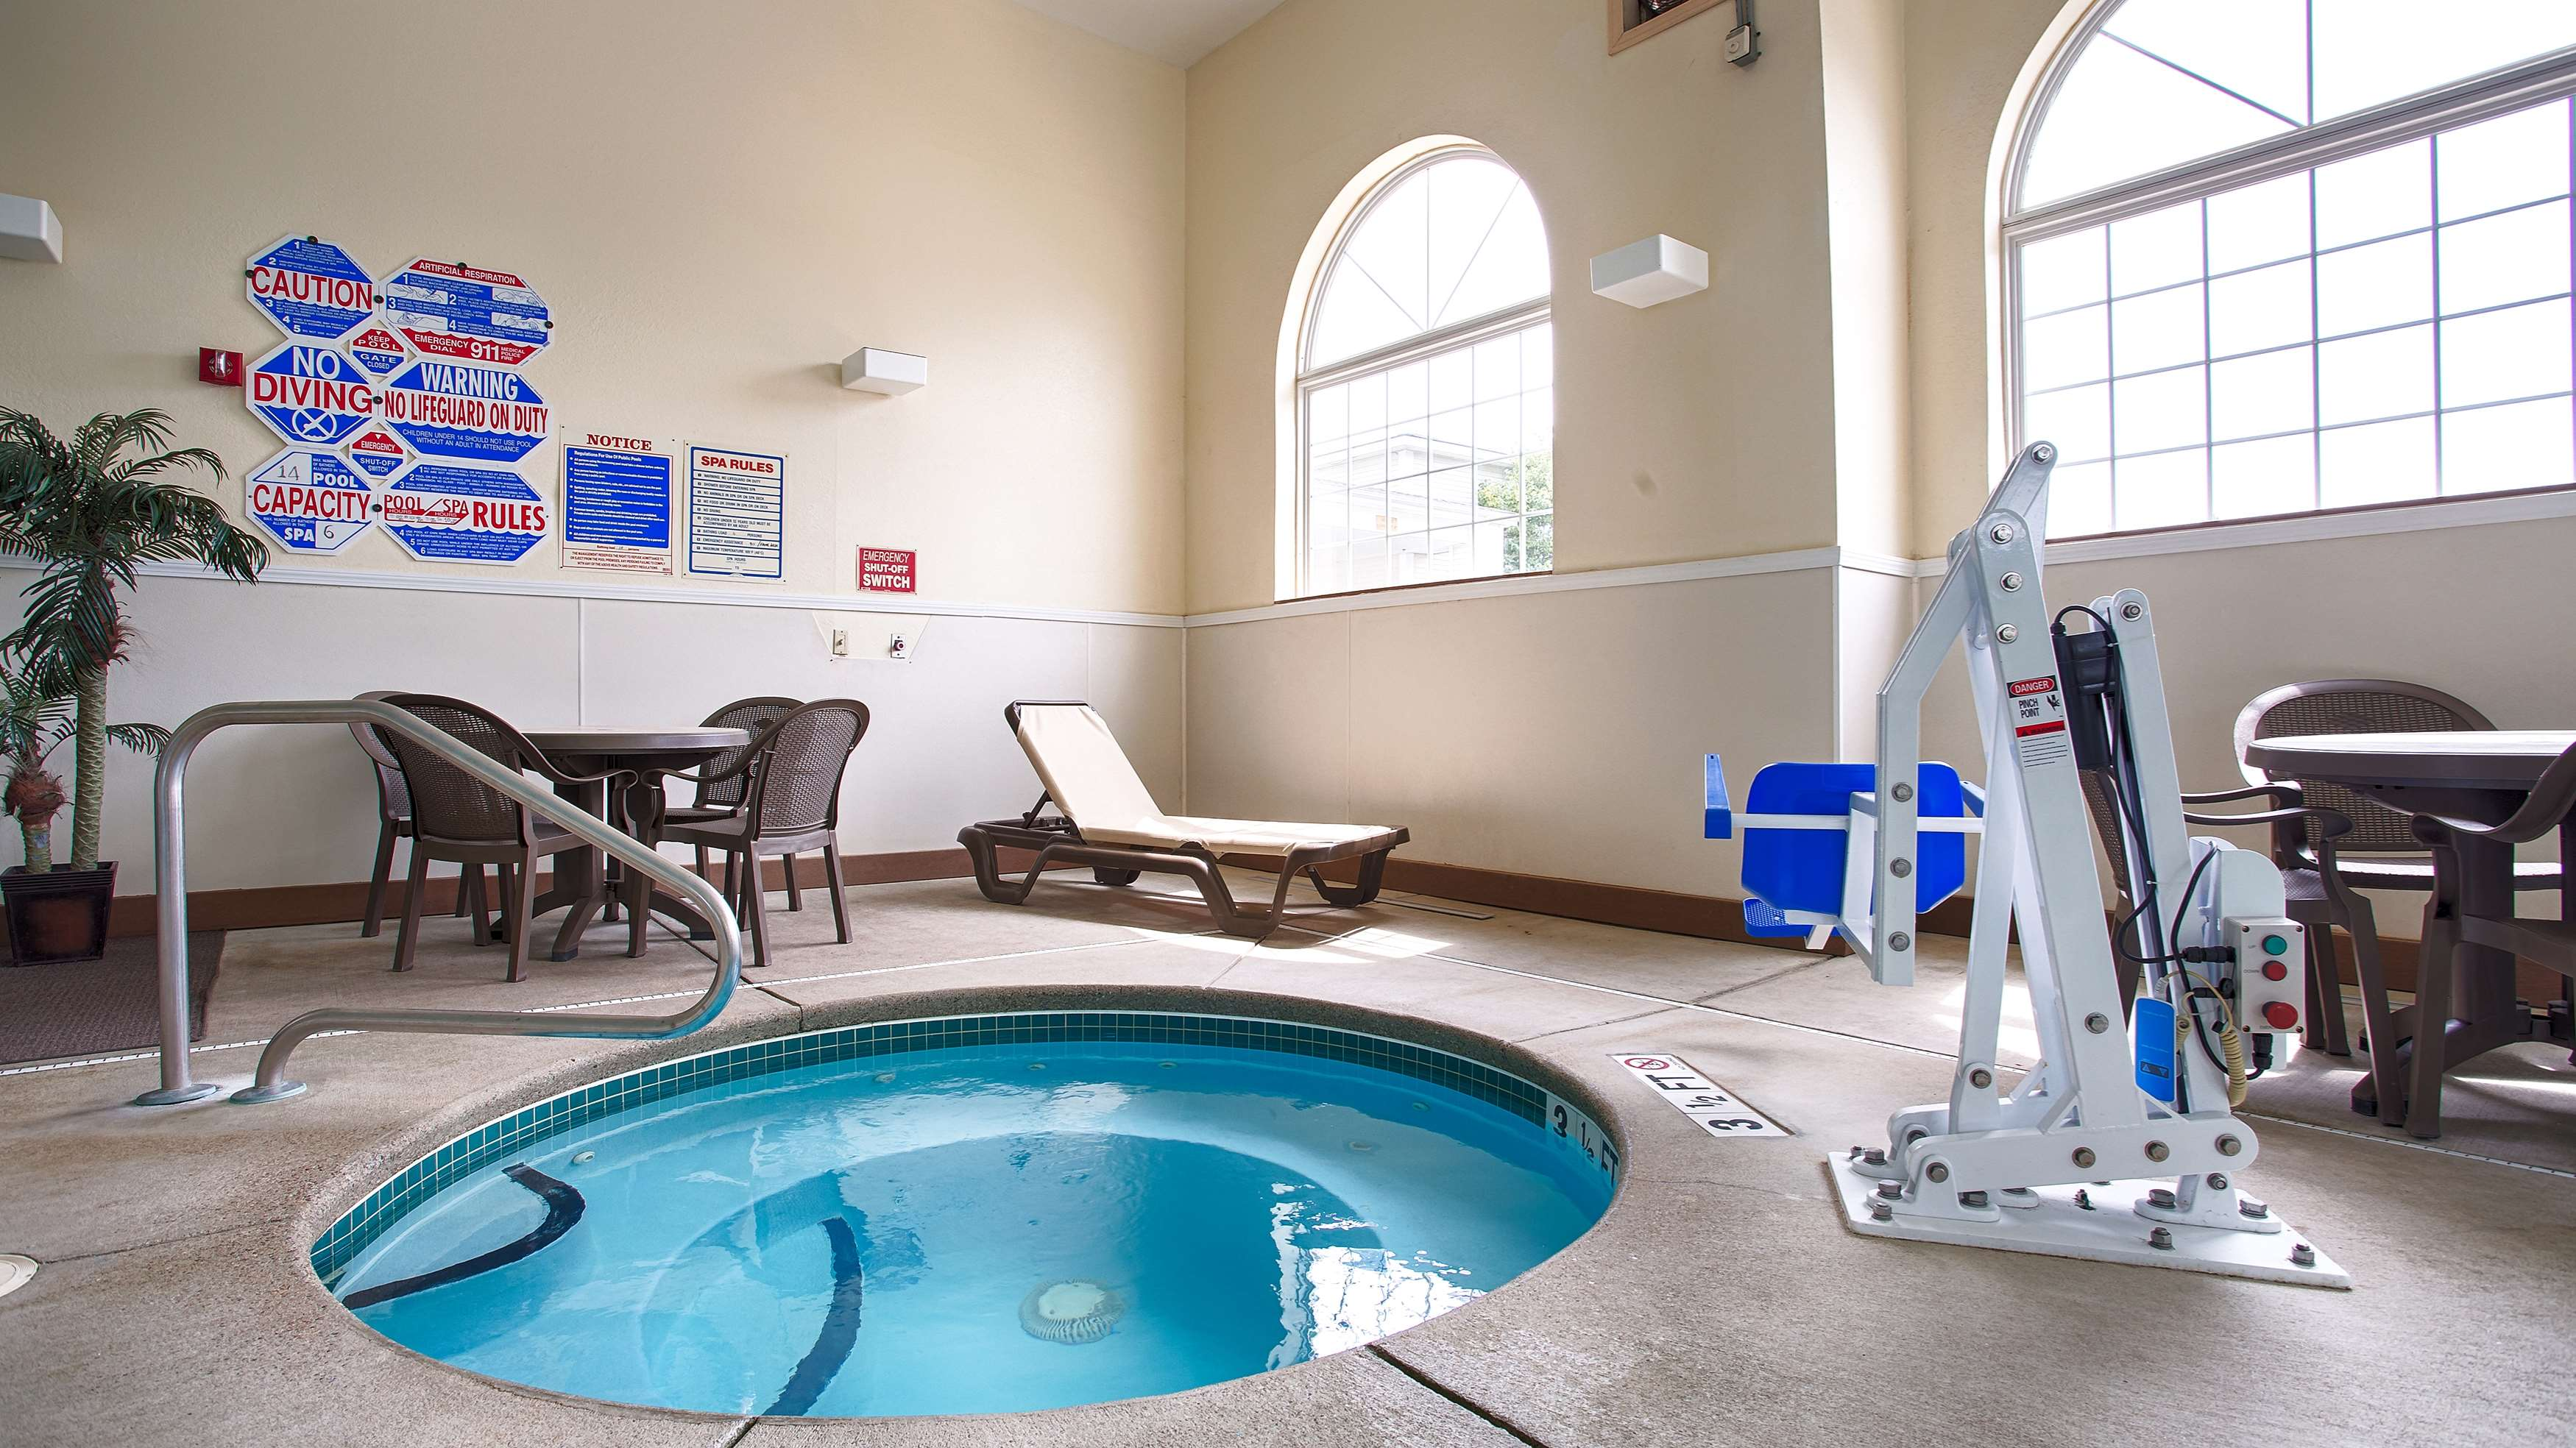 Hotels In Concord Nh With Hot Tub In Room